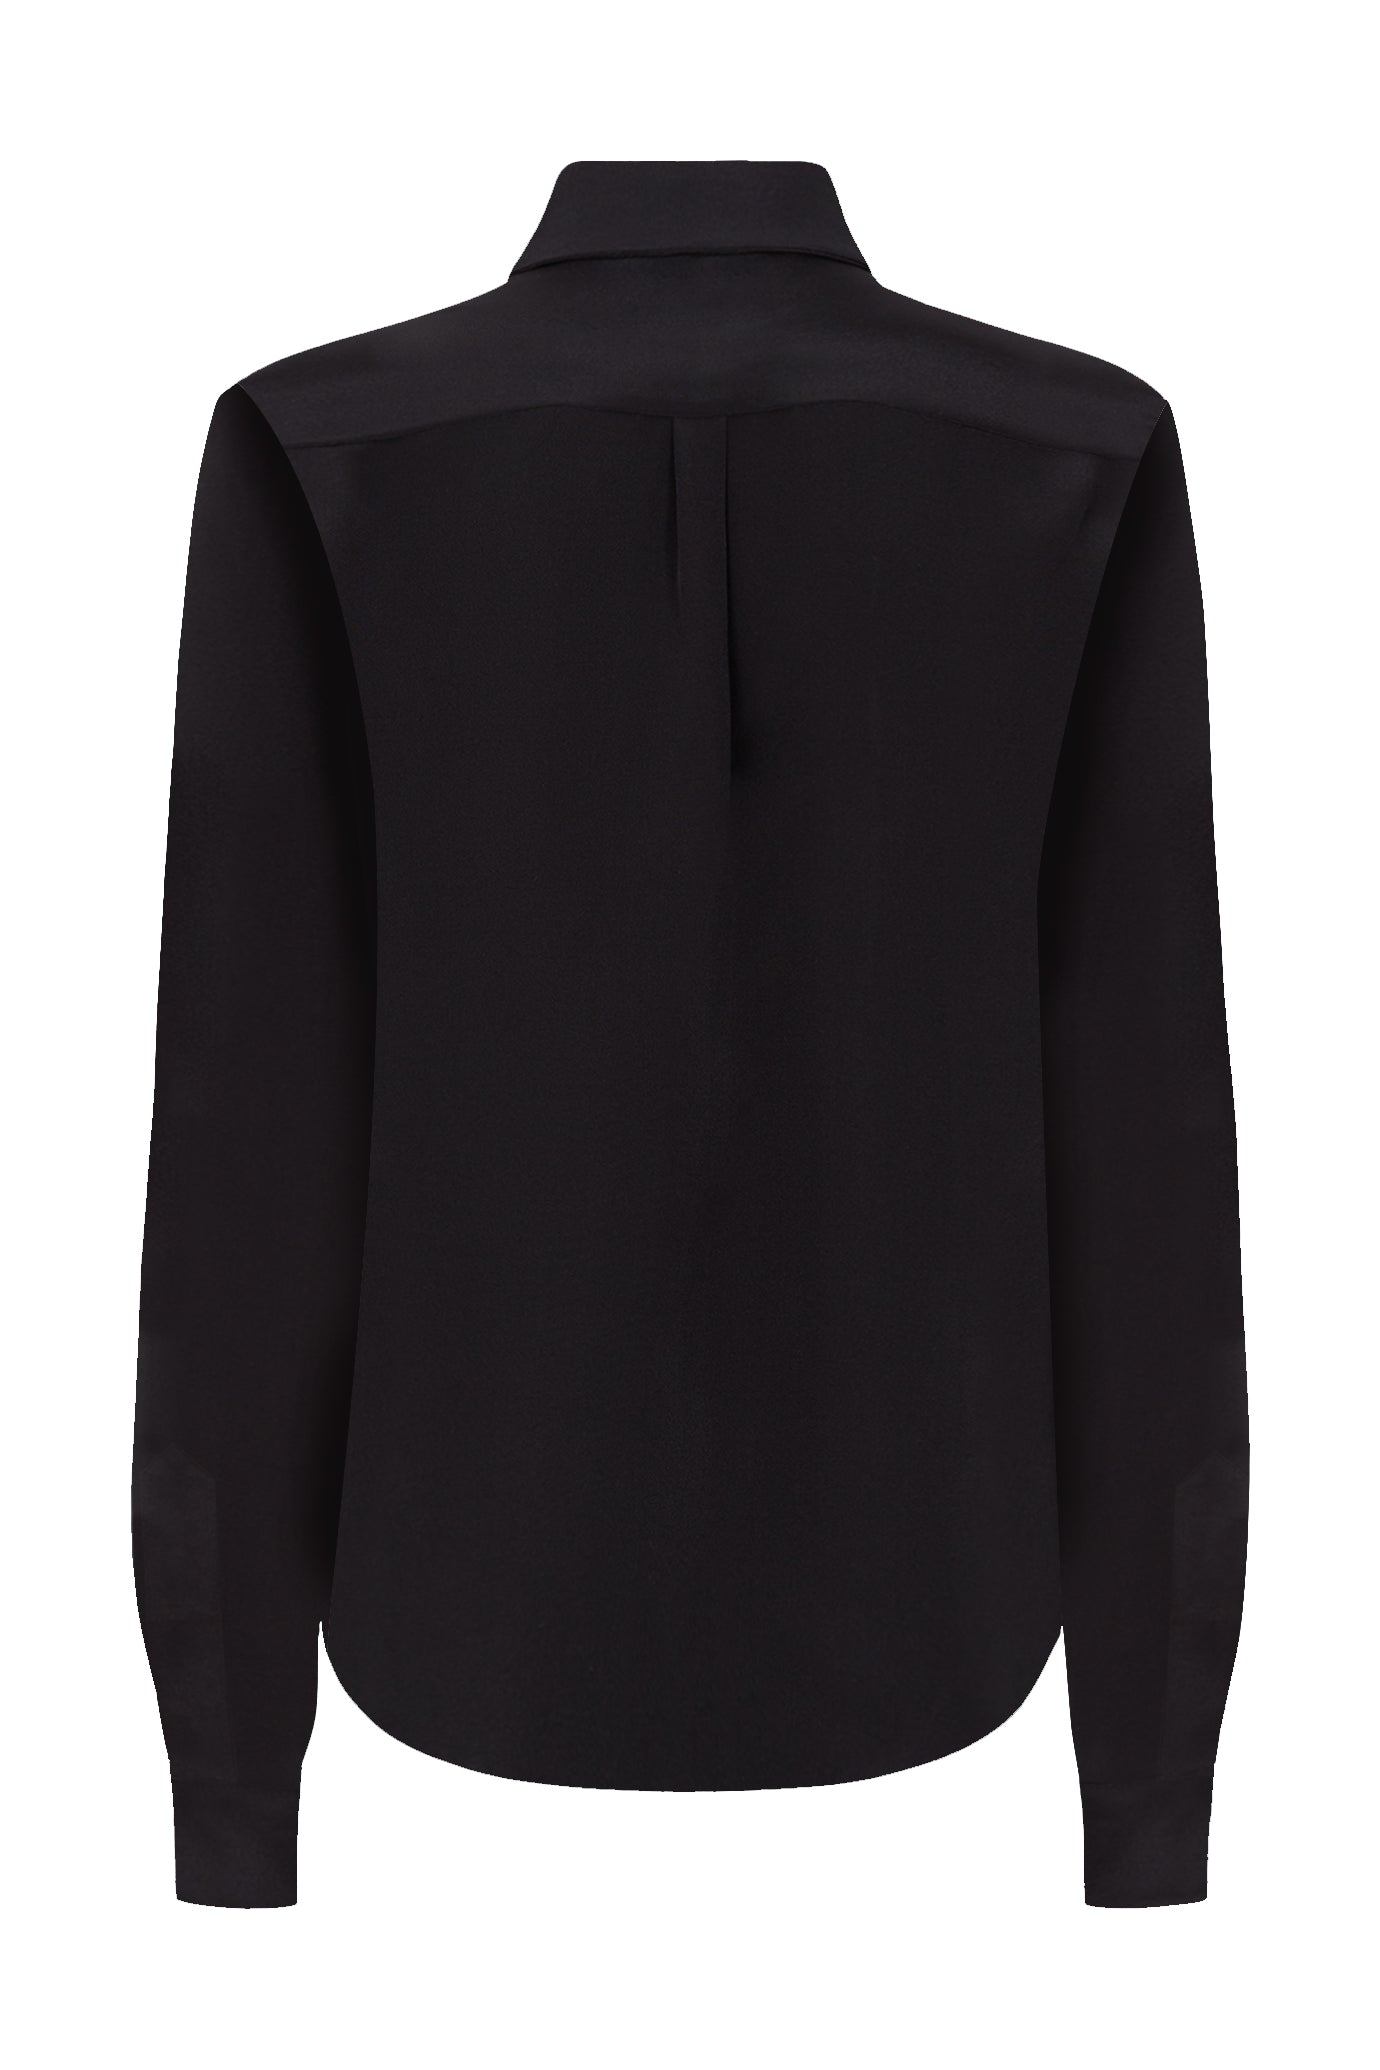 The Slim Shirt - Dark Navy Crepe Silk